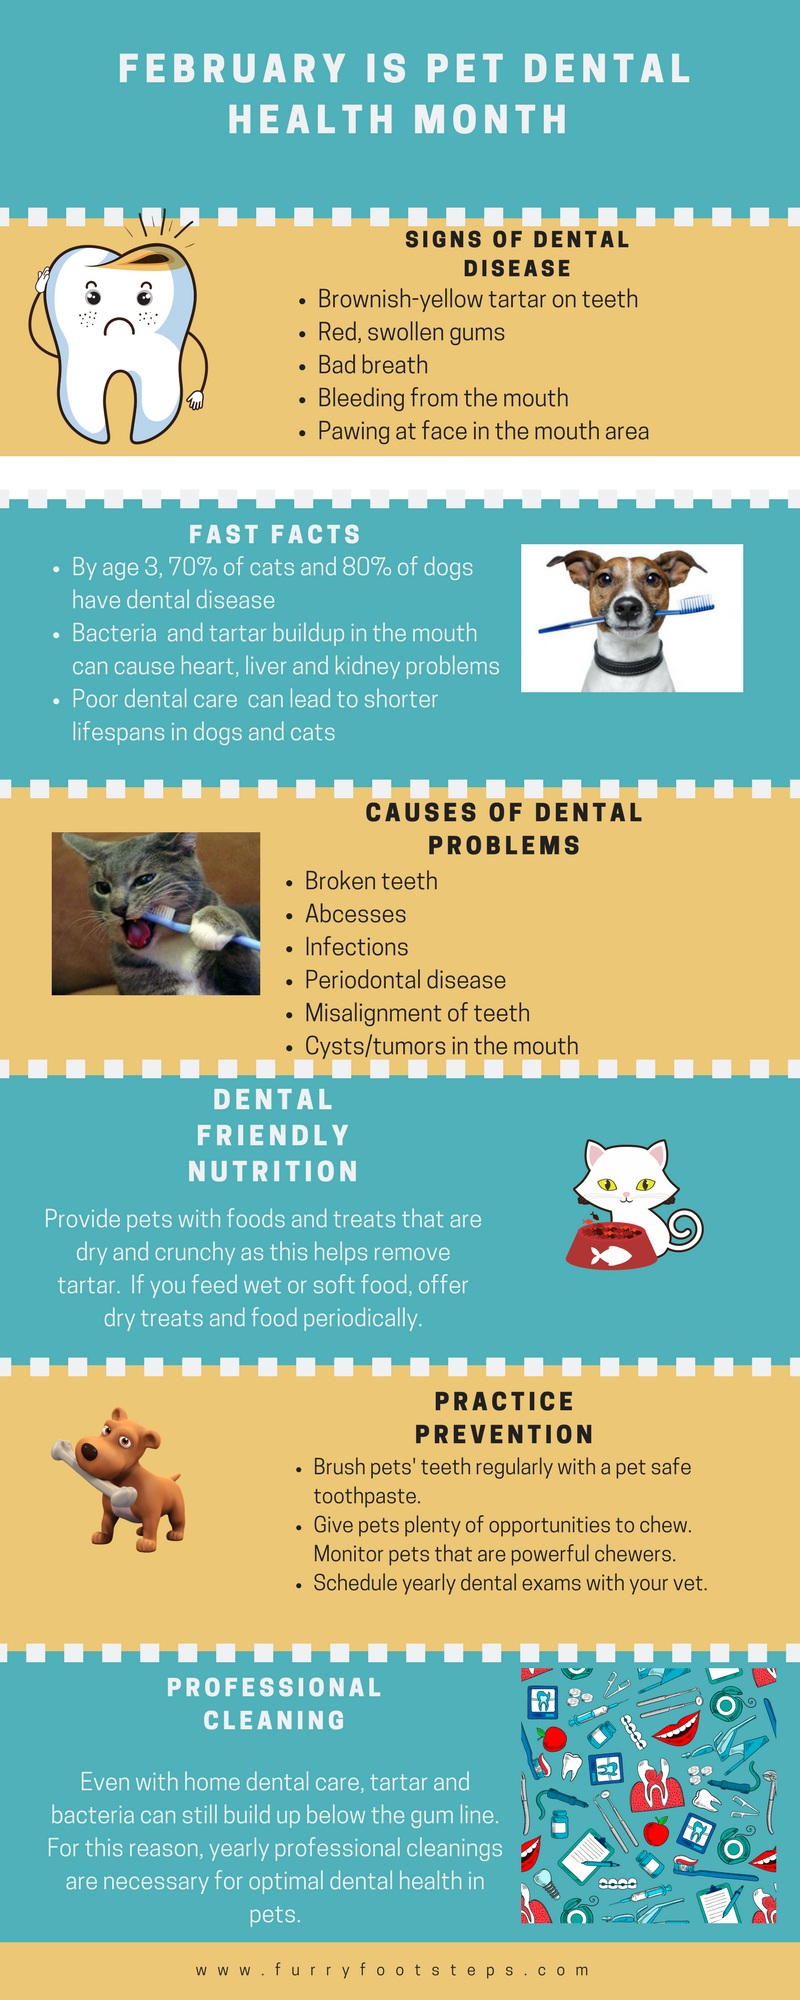 This Can Cause Severe Long Term Health Issues And Pets So Good Pet Dental Is Critical For The Quality Of Life Cats Dogs